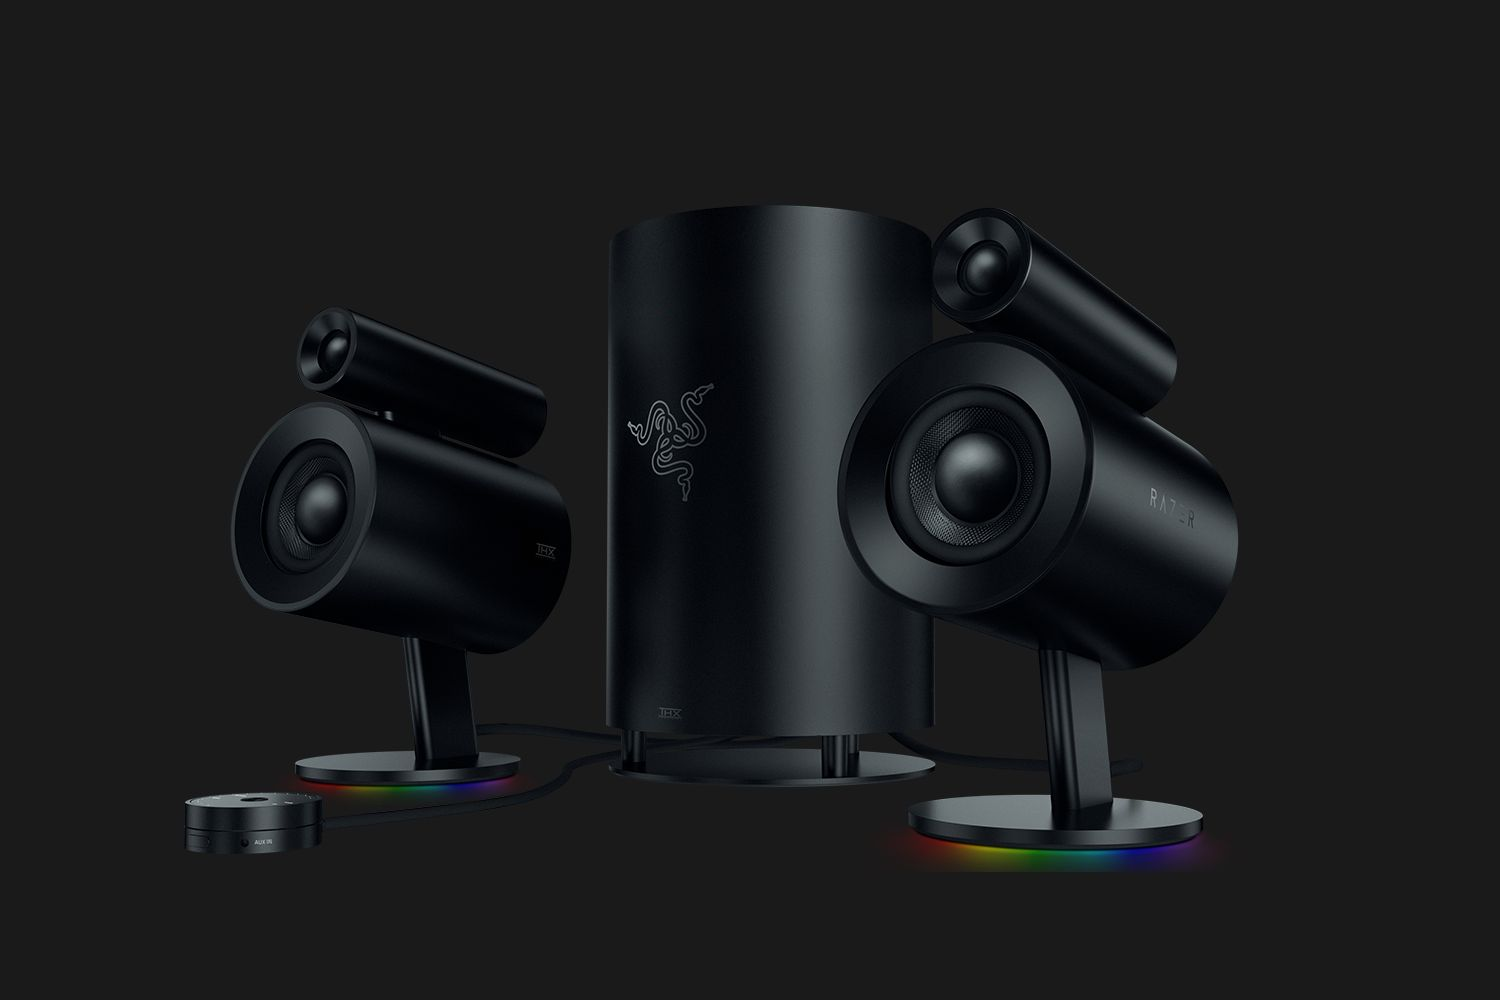 The Hardware Launch Review - Razer Nommo Pro